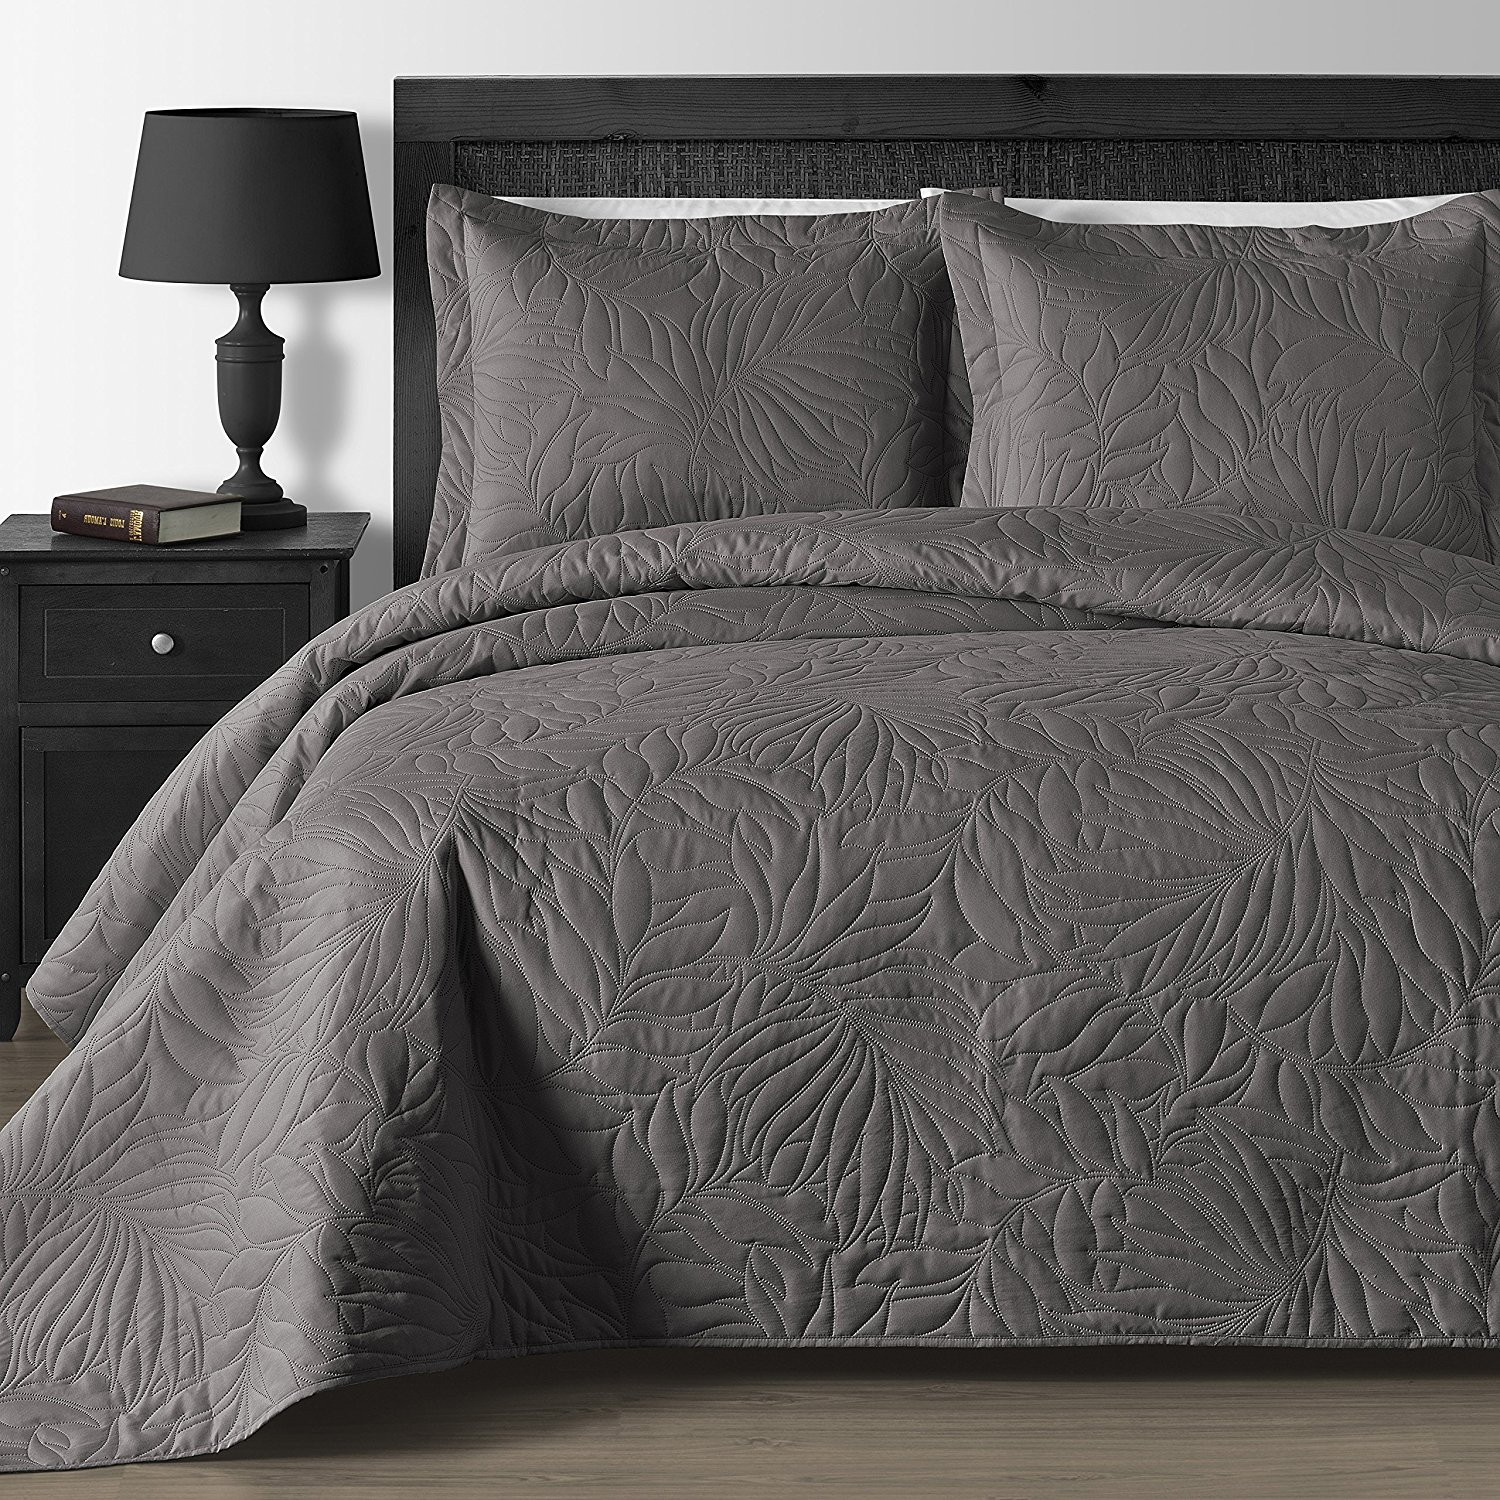 Oversized and Lightweight Leafage 3-piece Bedspread Coverlet Set by Staniey Collection